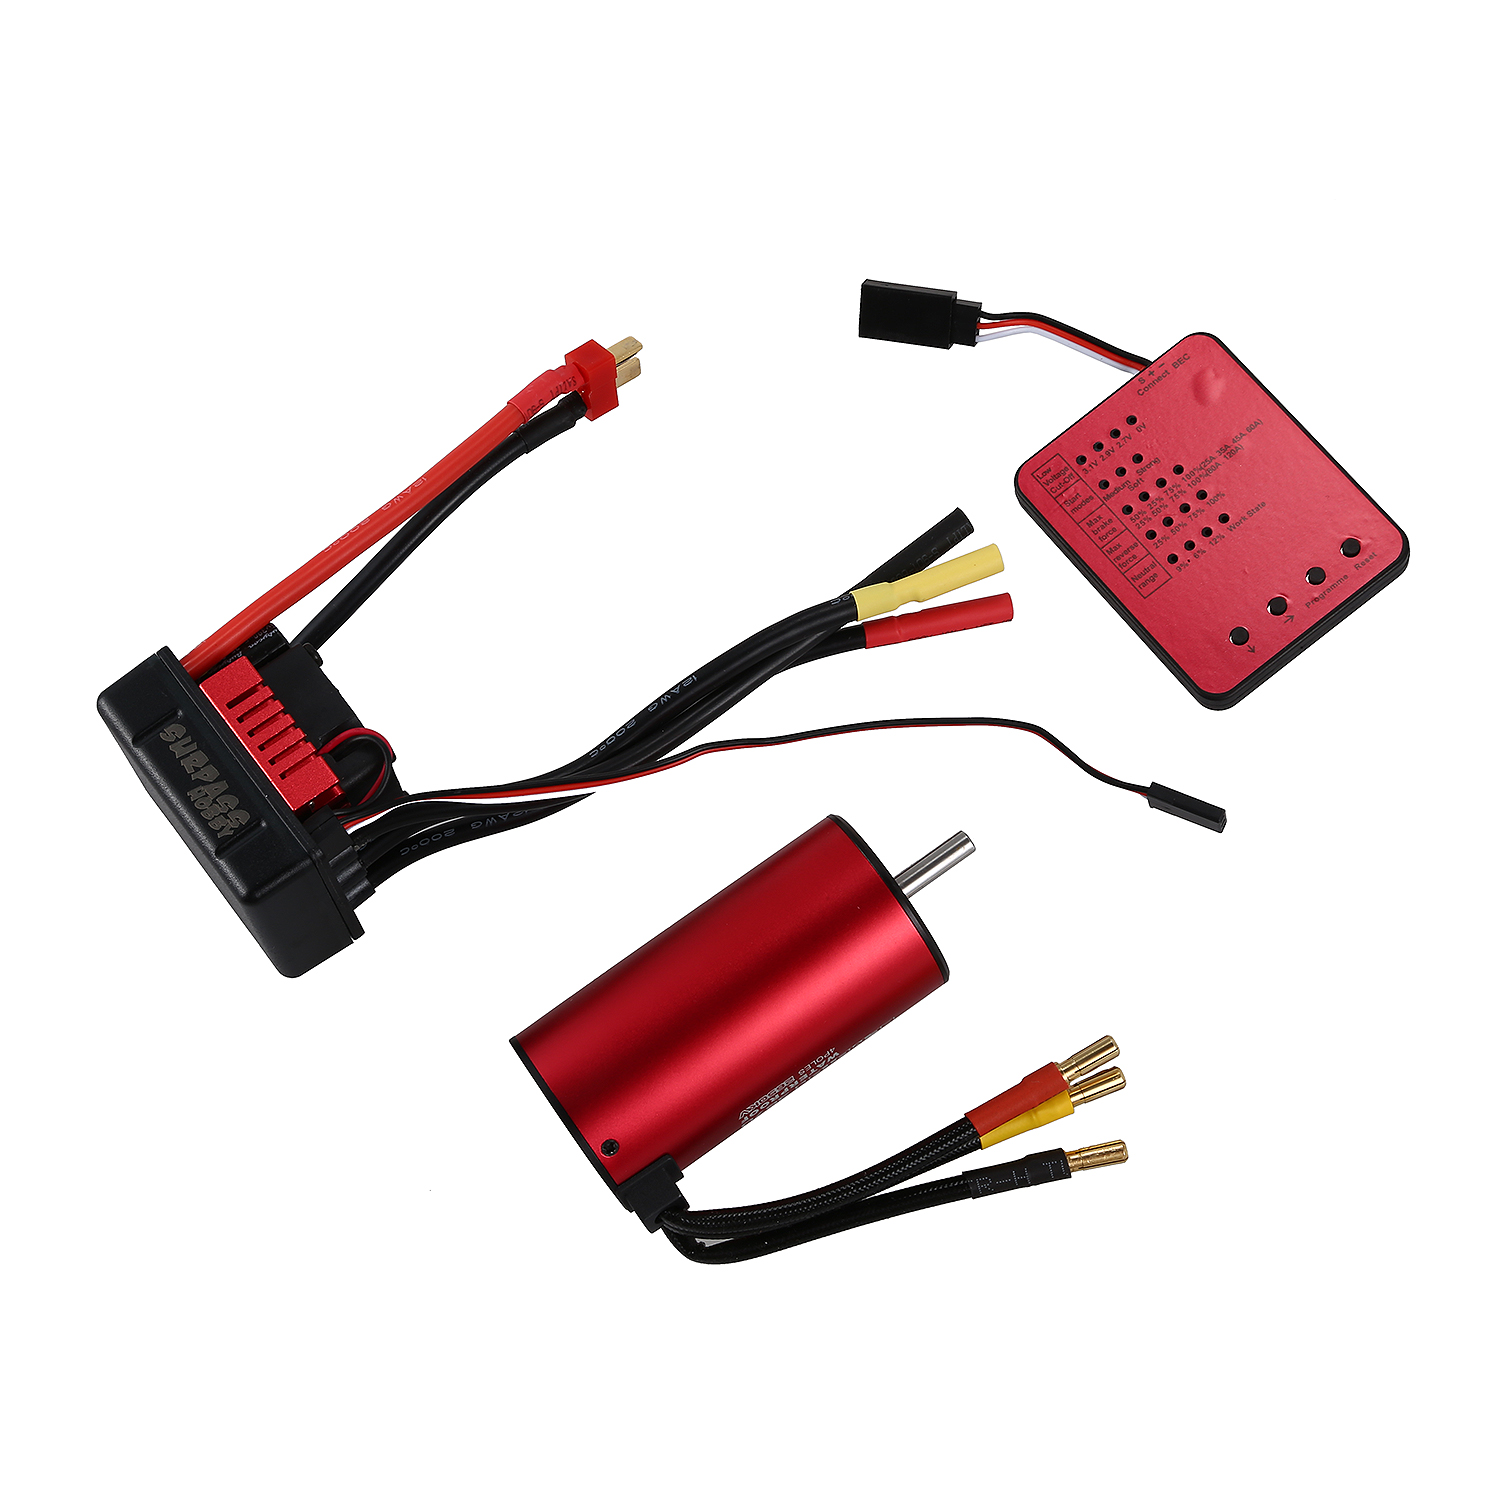 SURPASS HOBBY S3670 2650KV Sensorless Brushless Motor 120A Brushless ESC and Program Card Combo Set for 1/8 RC Car Truck original goolrc s3650 3900kv sensorless brushless motor 60a brushless esc and program card combo set for 1 10 rc car truck